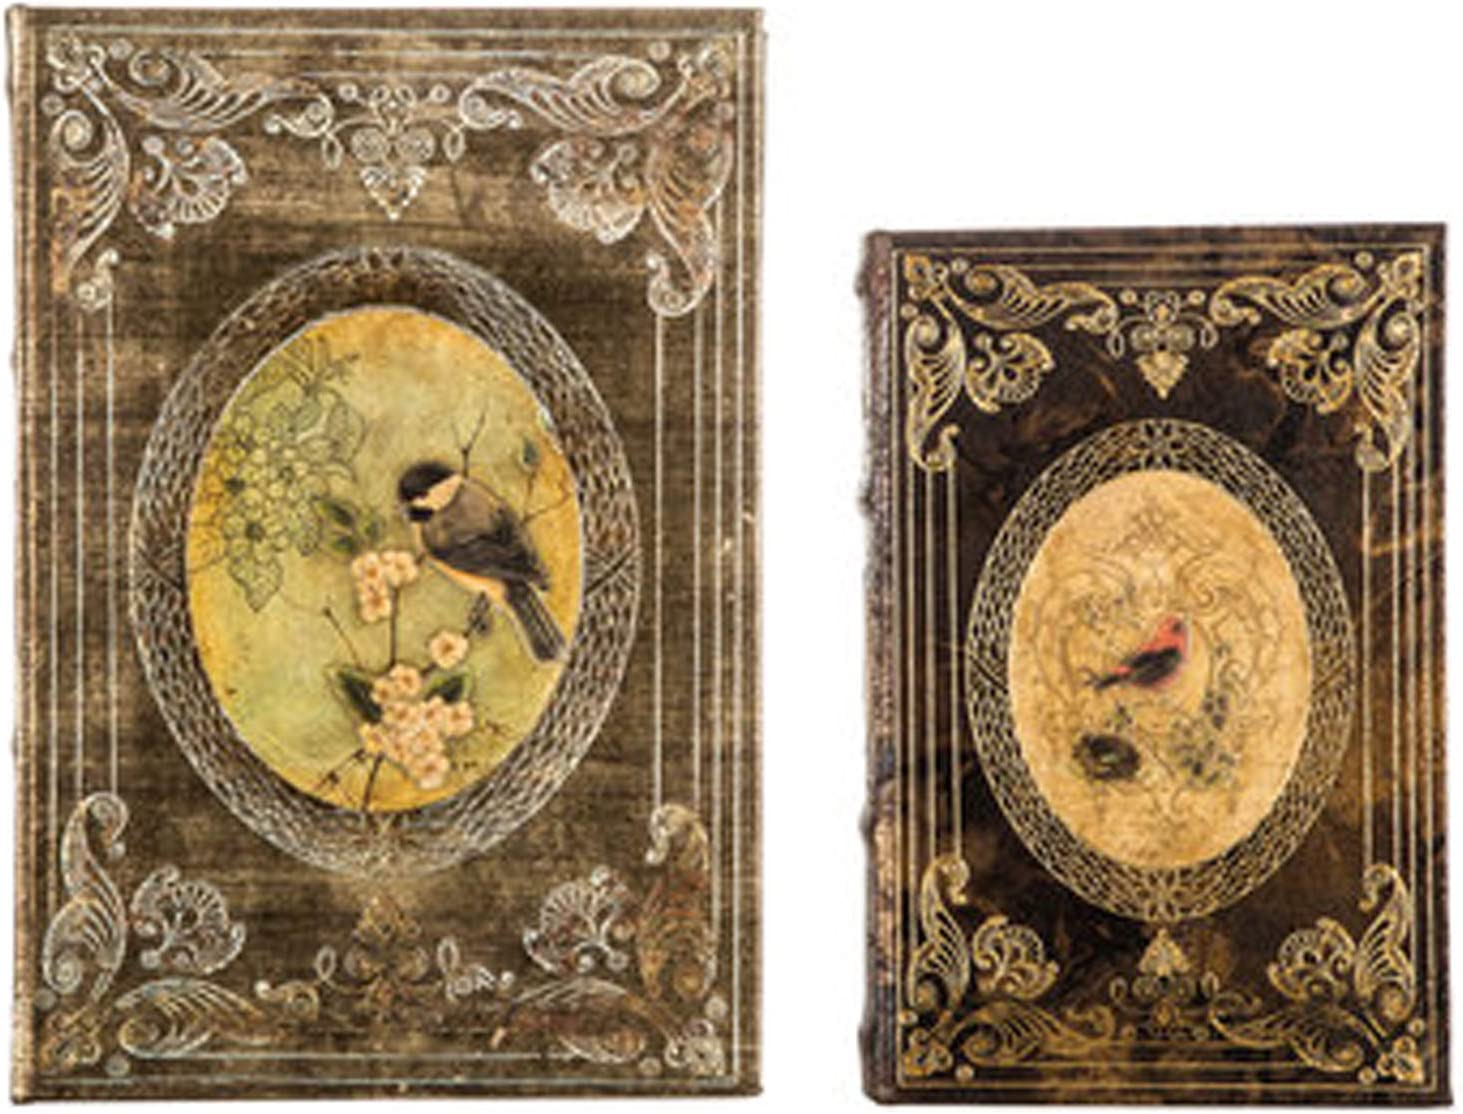 Wisechoice 2 Pieces Vintage Book Box Set with Birds Design   Perfect for Bookshelves and Desks Display